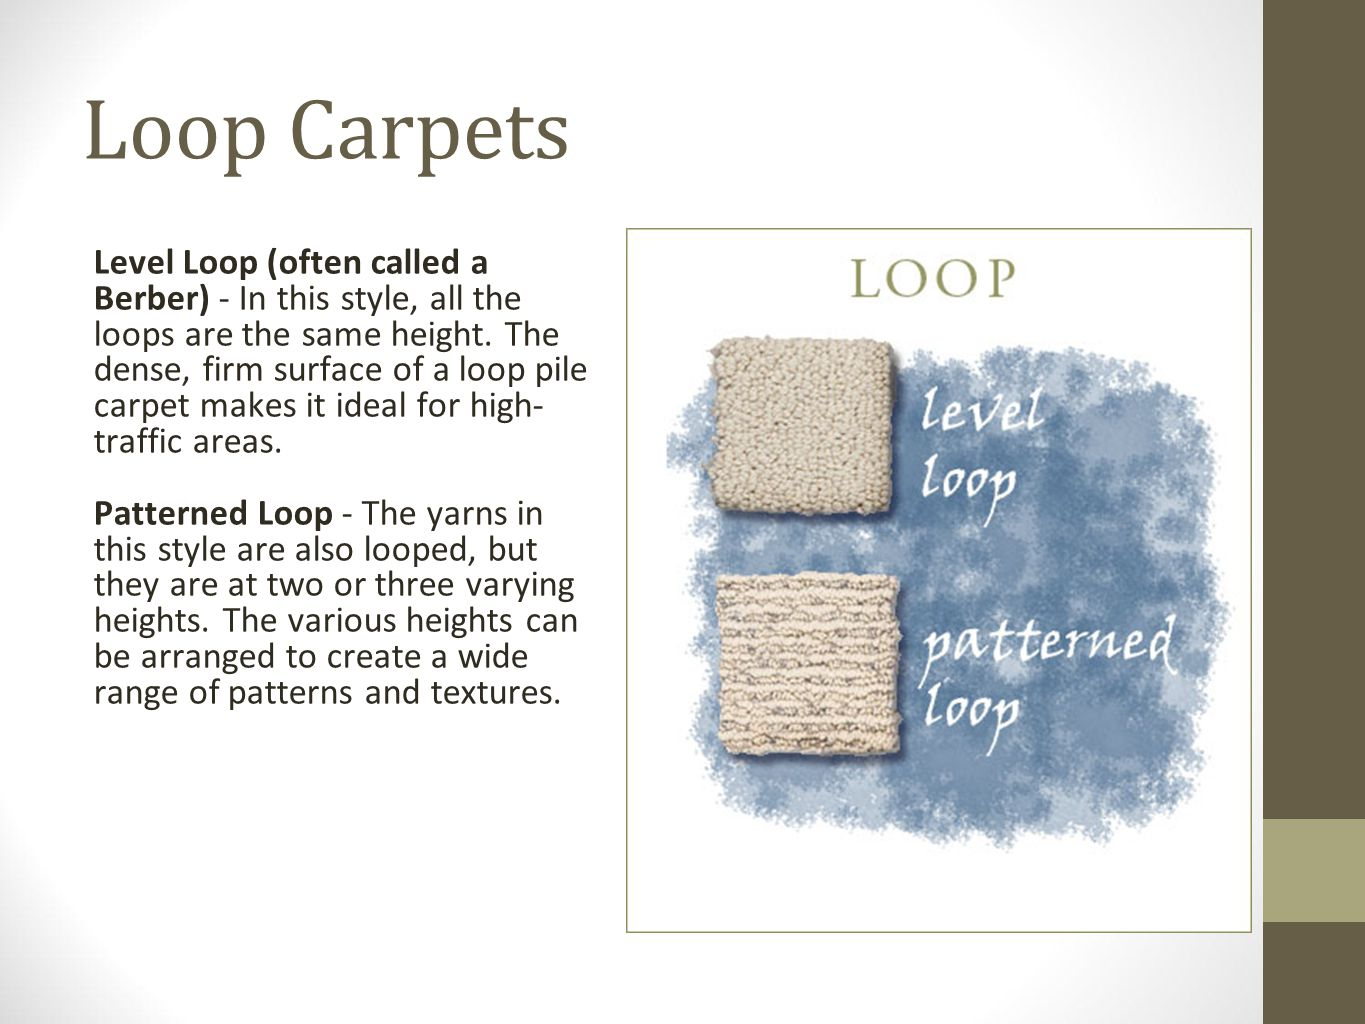 Loop Carpets Level Loop (often called a Berber) - In this style, all the loops are the same height. The dense, firm surface of a loop pile carpet make